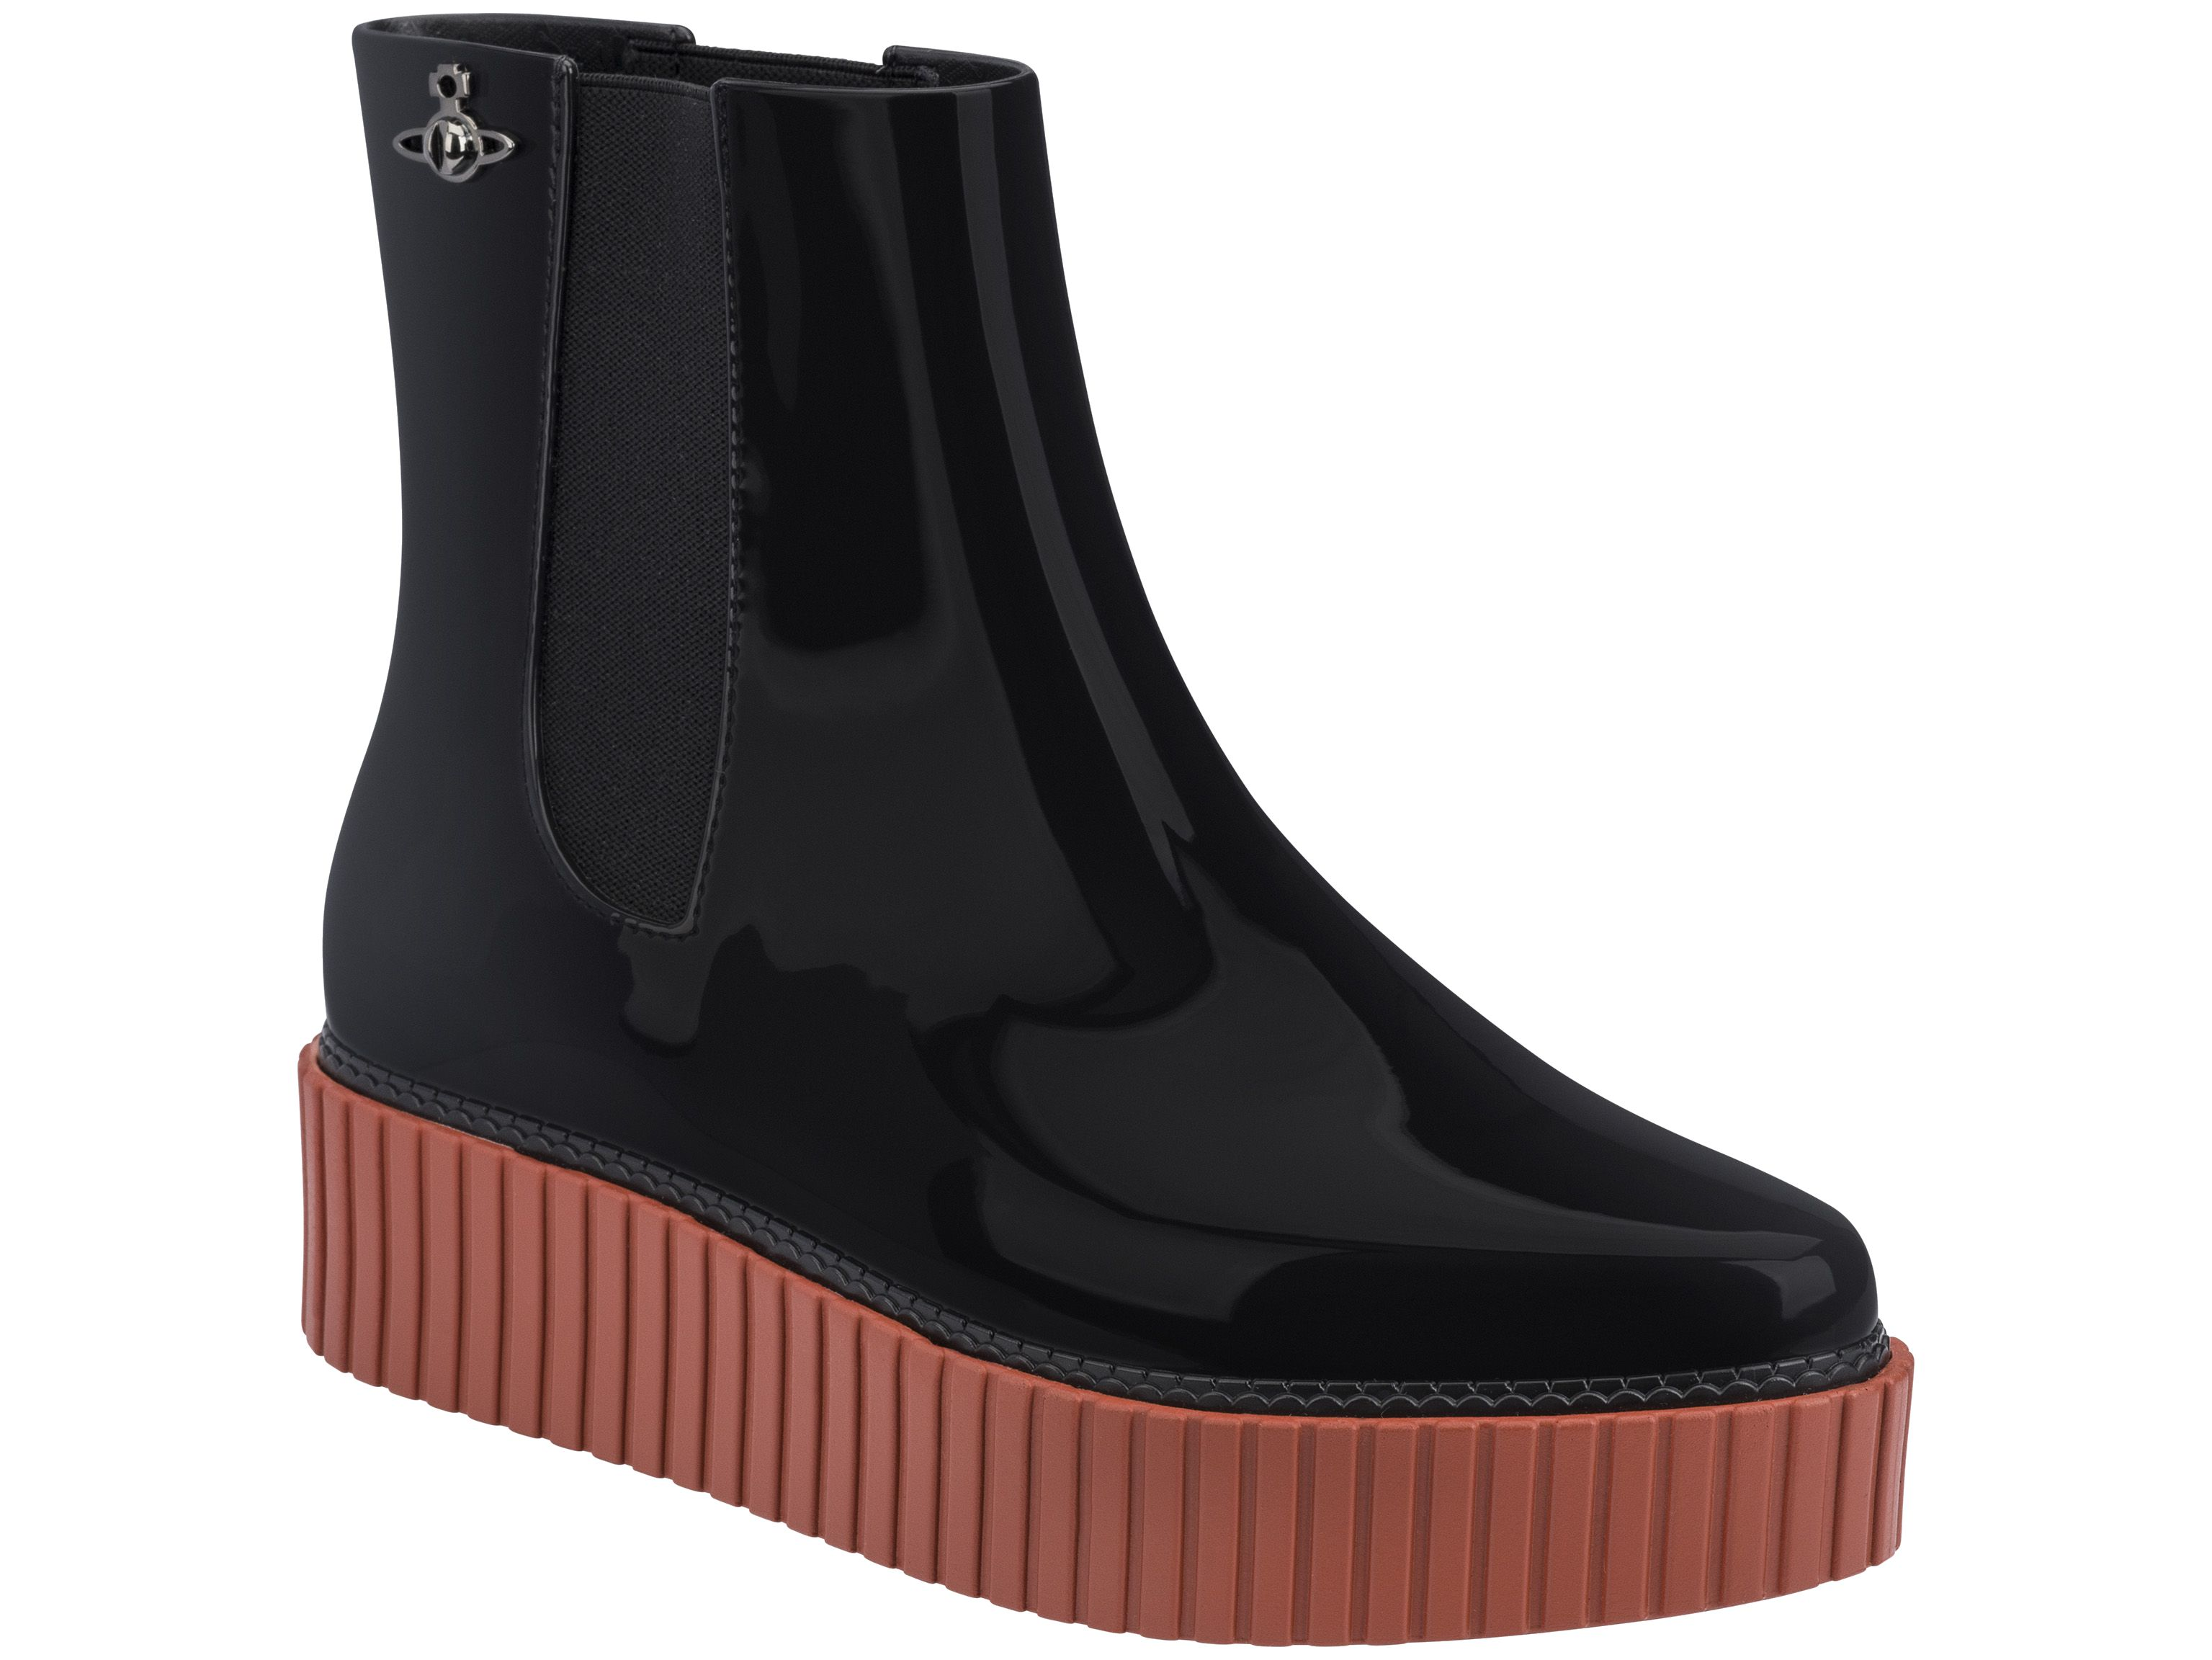 Chelsea boots for sale in south africa